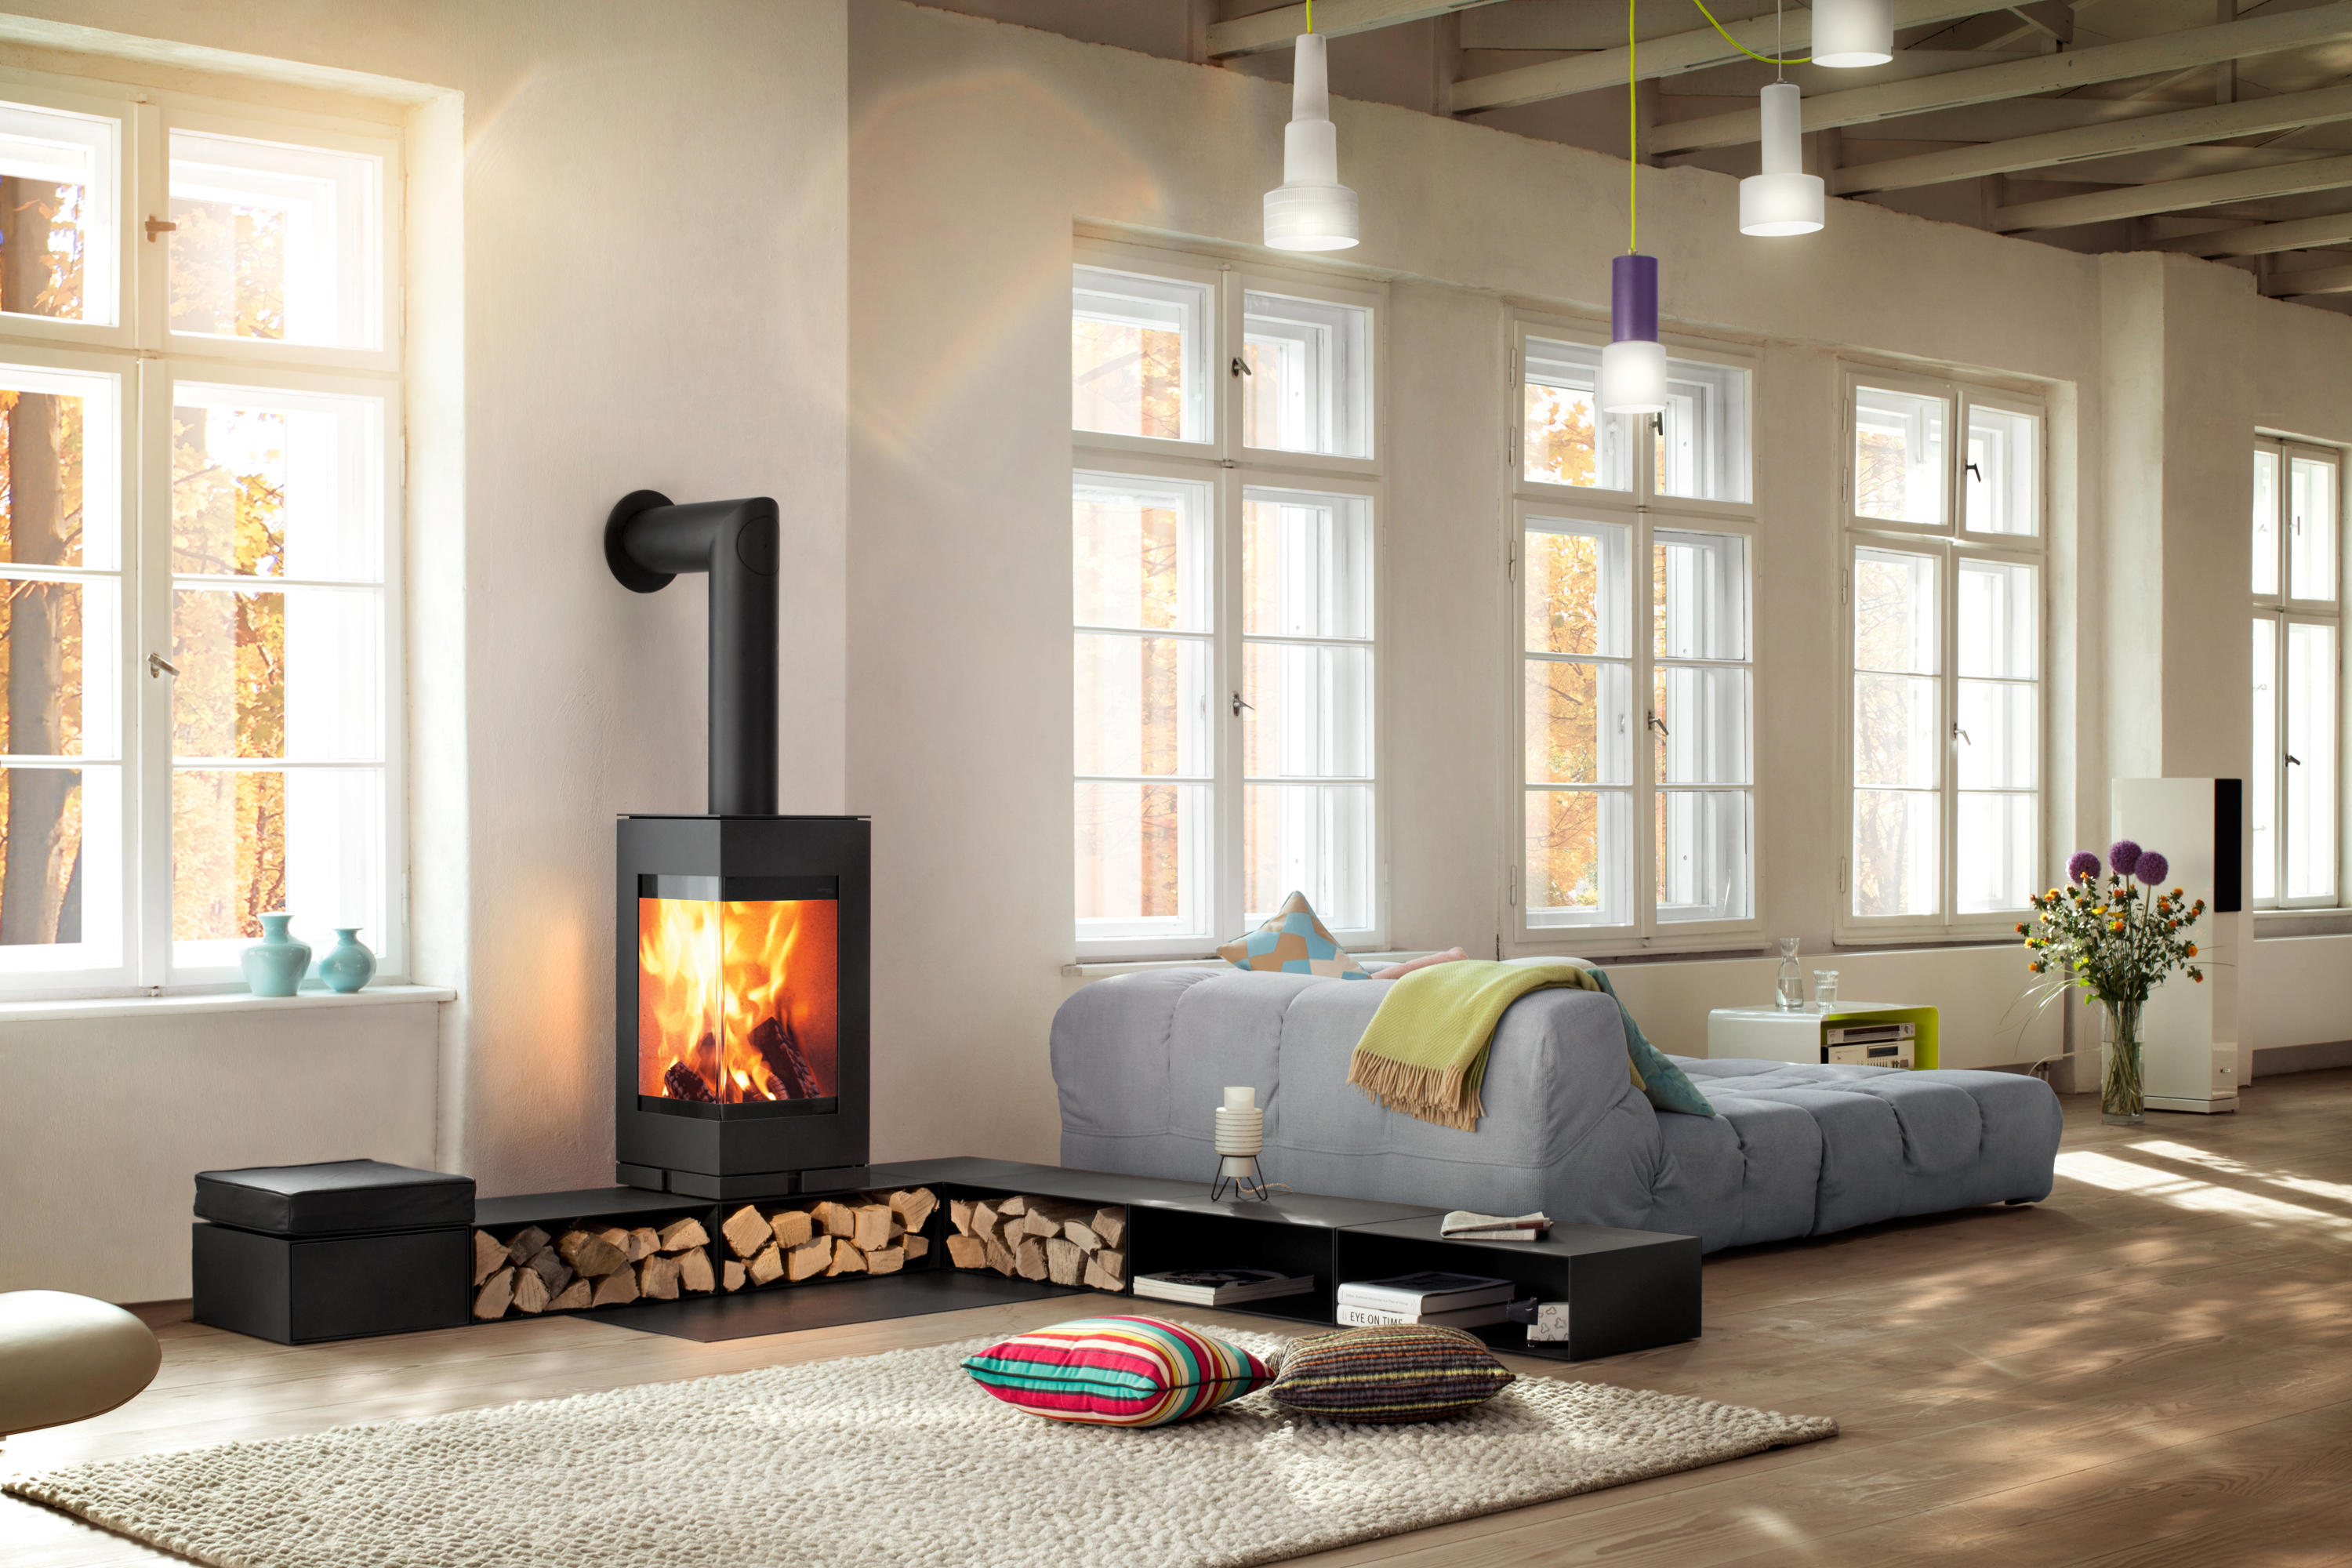 Sideboard 180 Elements Rund - Stoves From Skantherm | Architonic